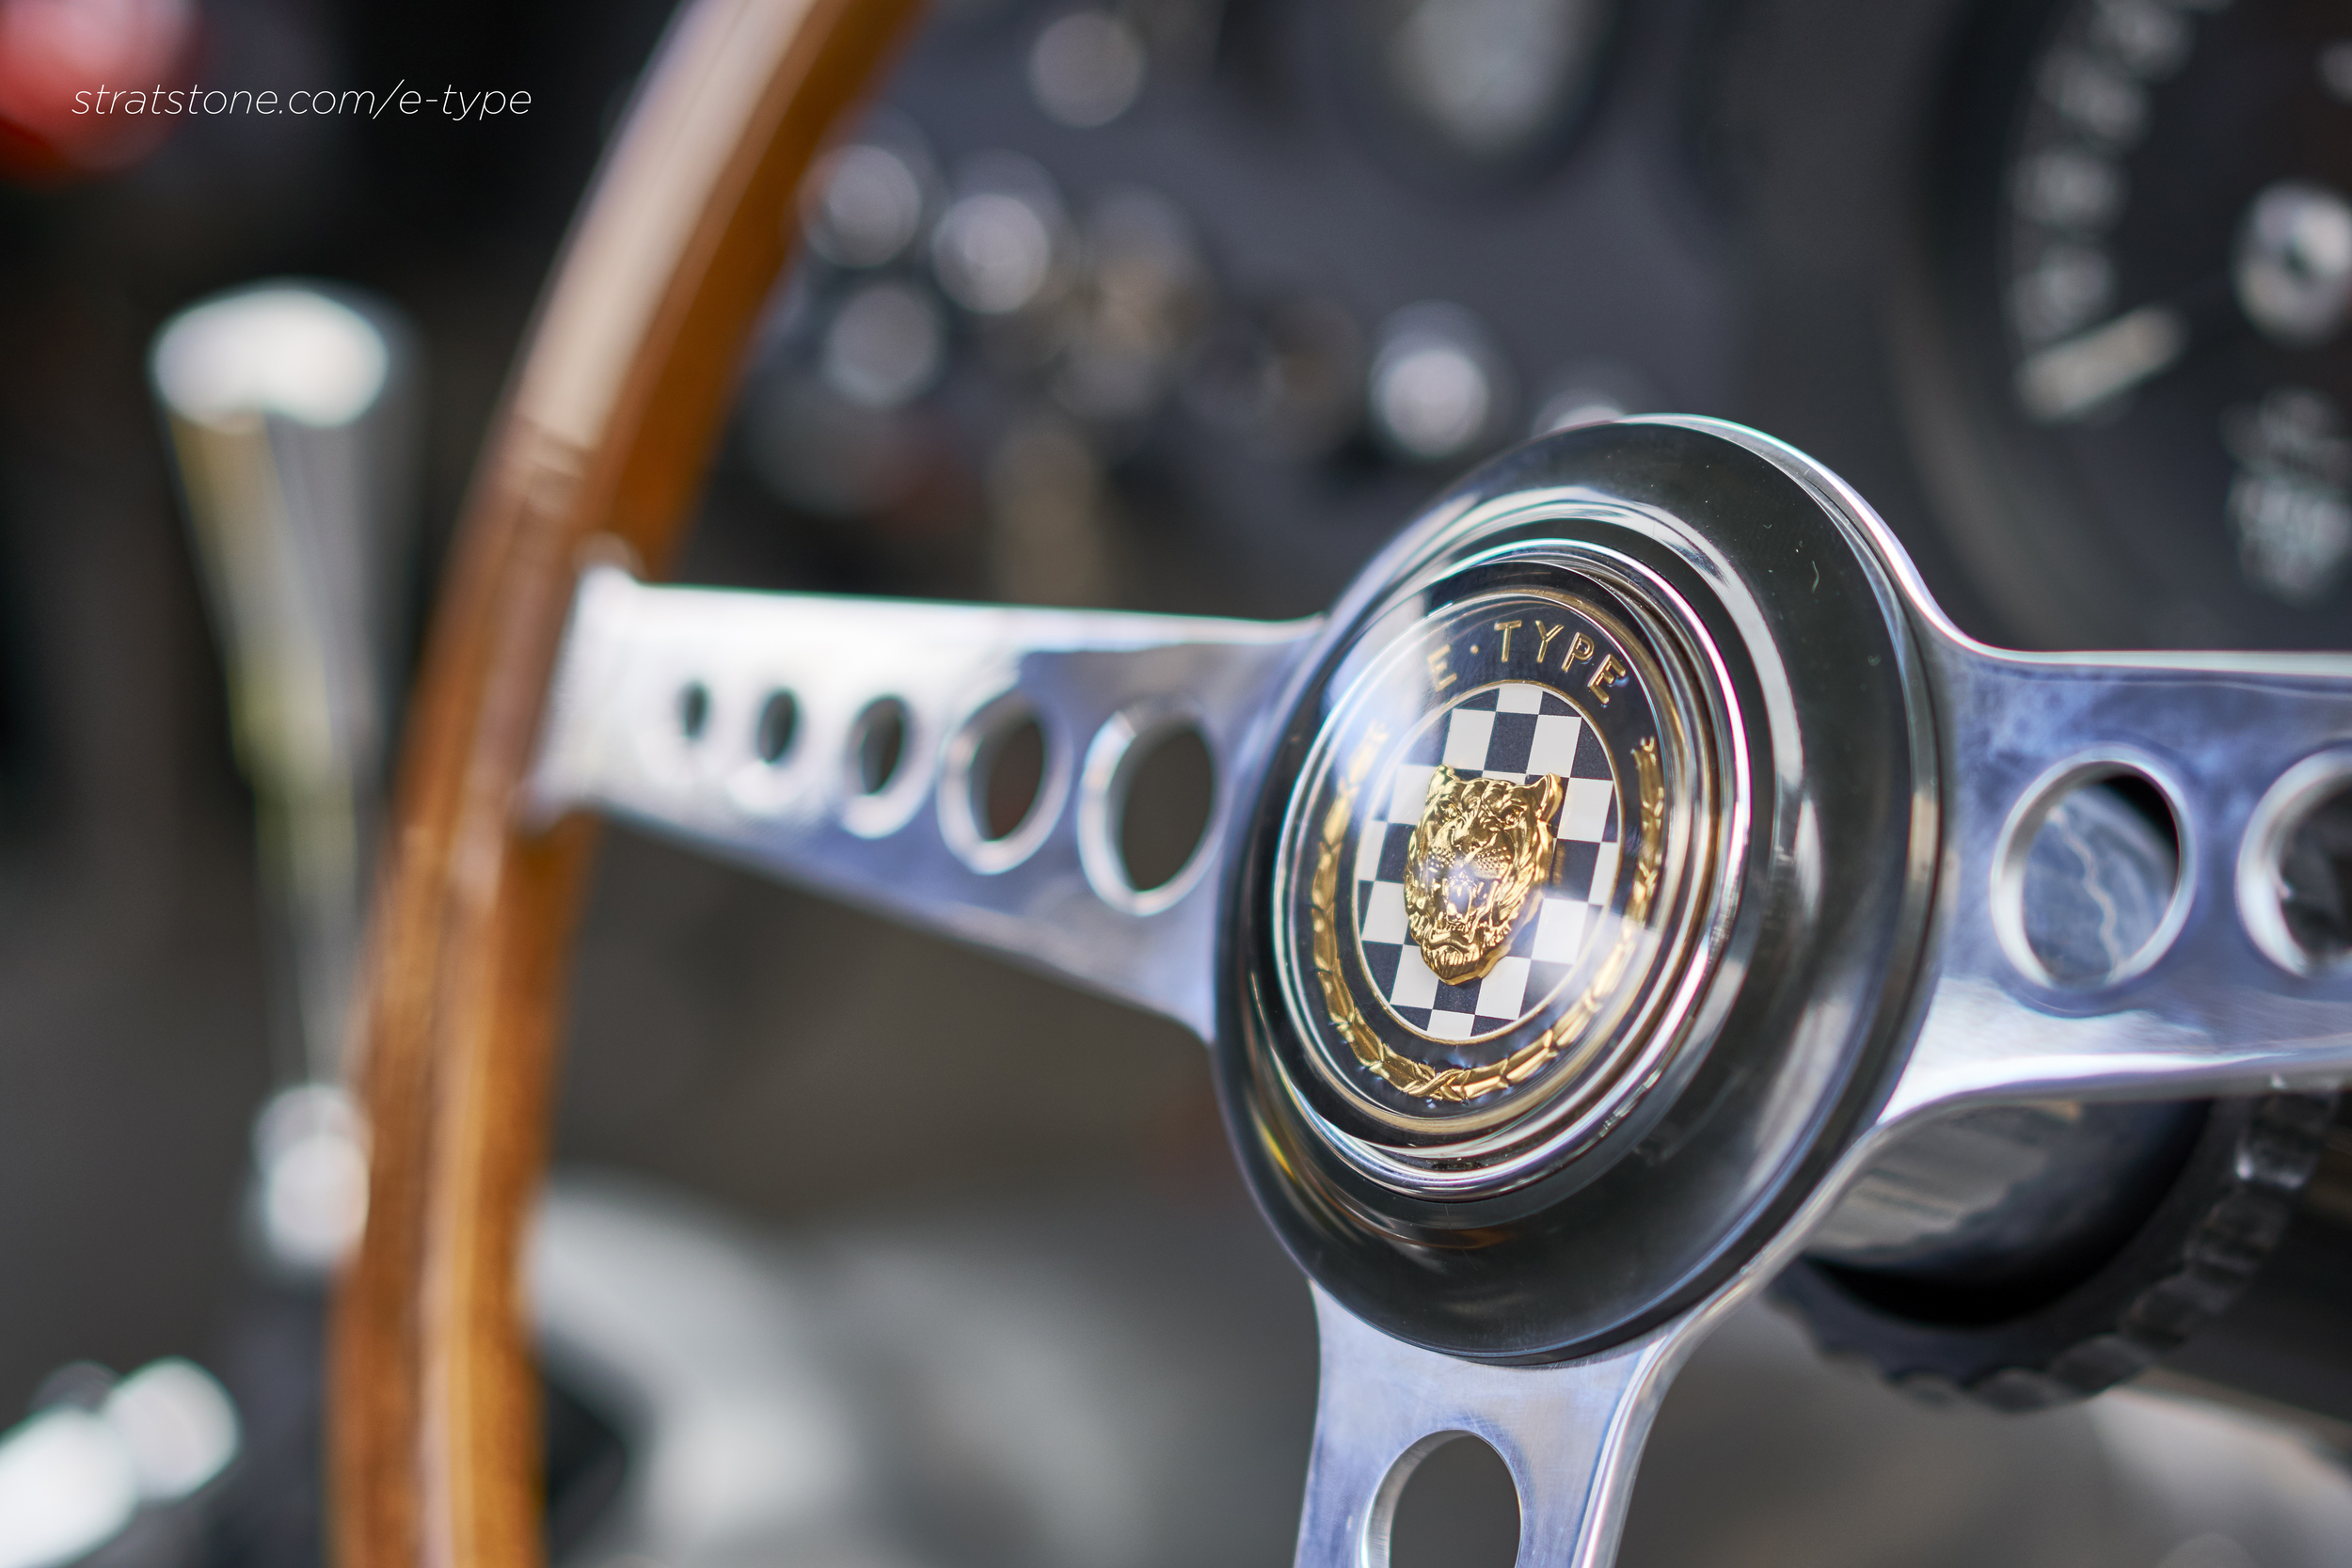 Magnificent steering wheel